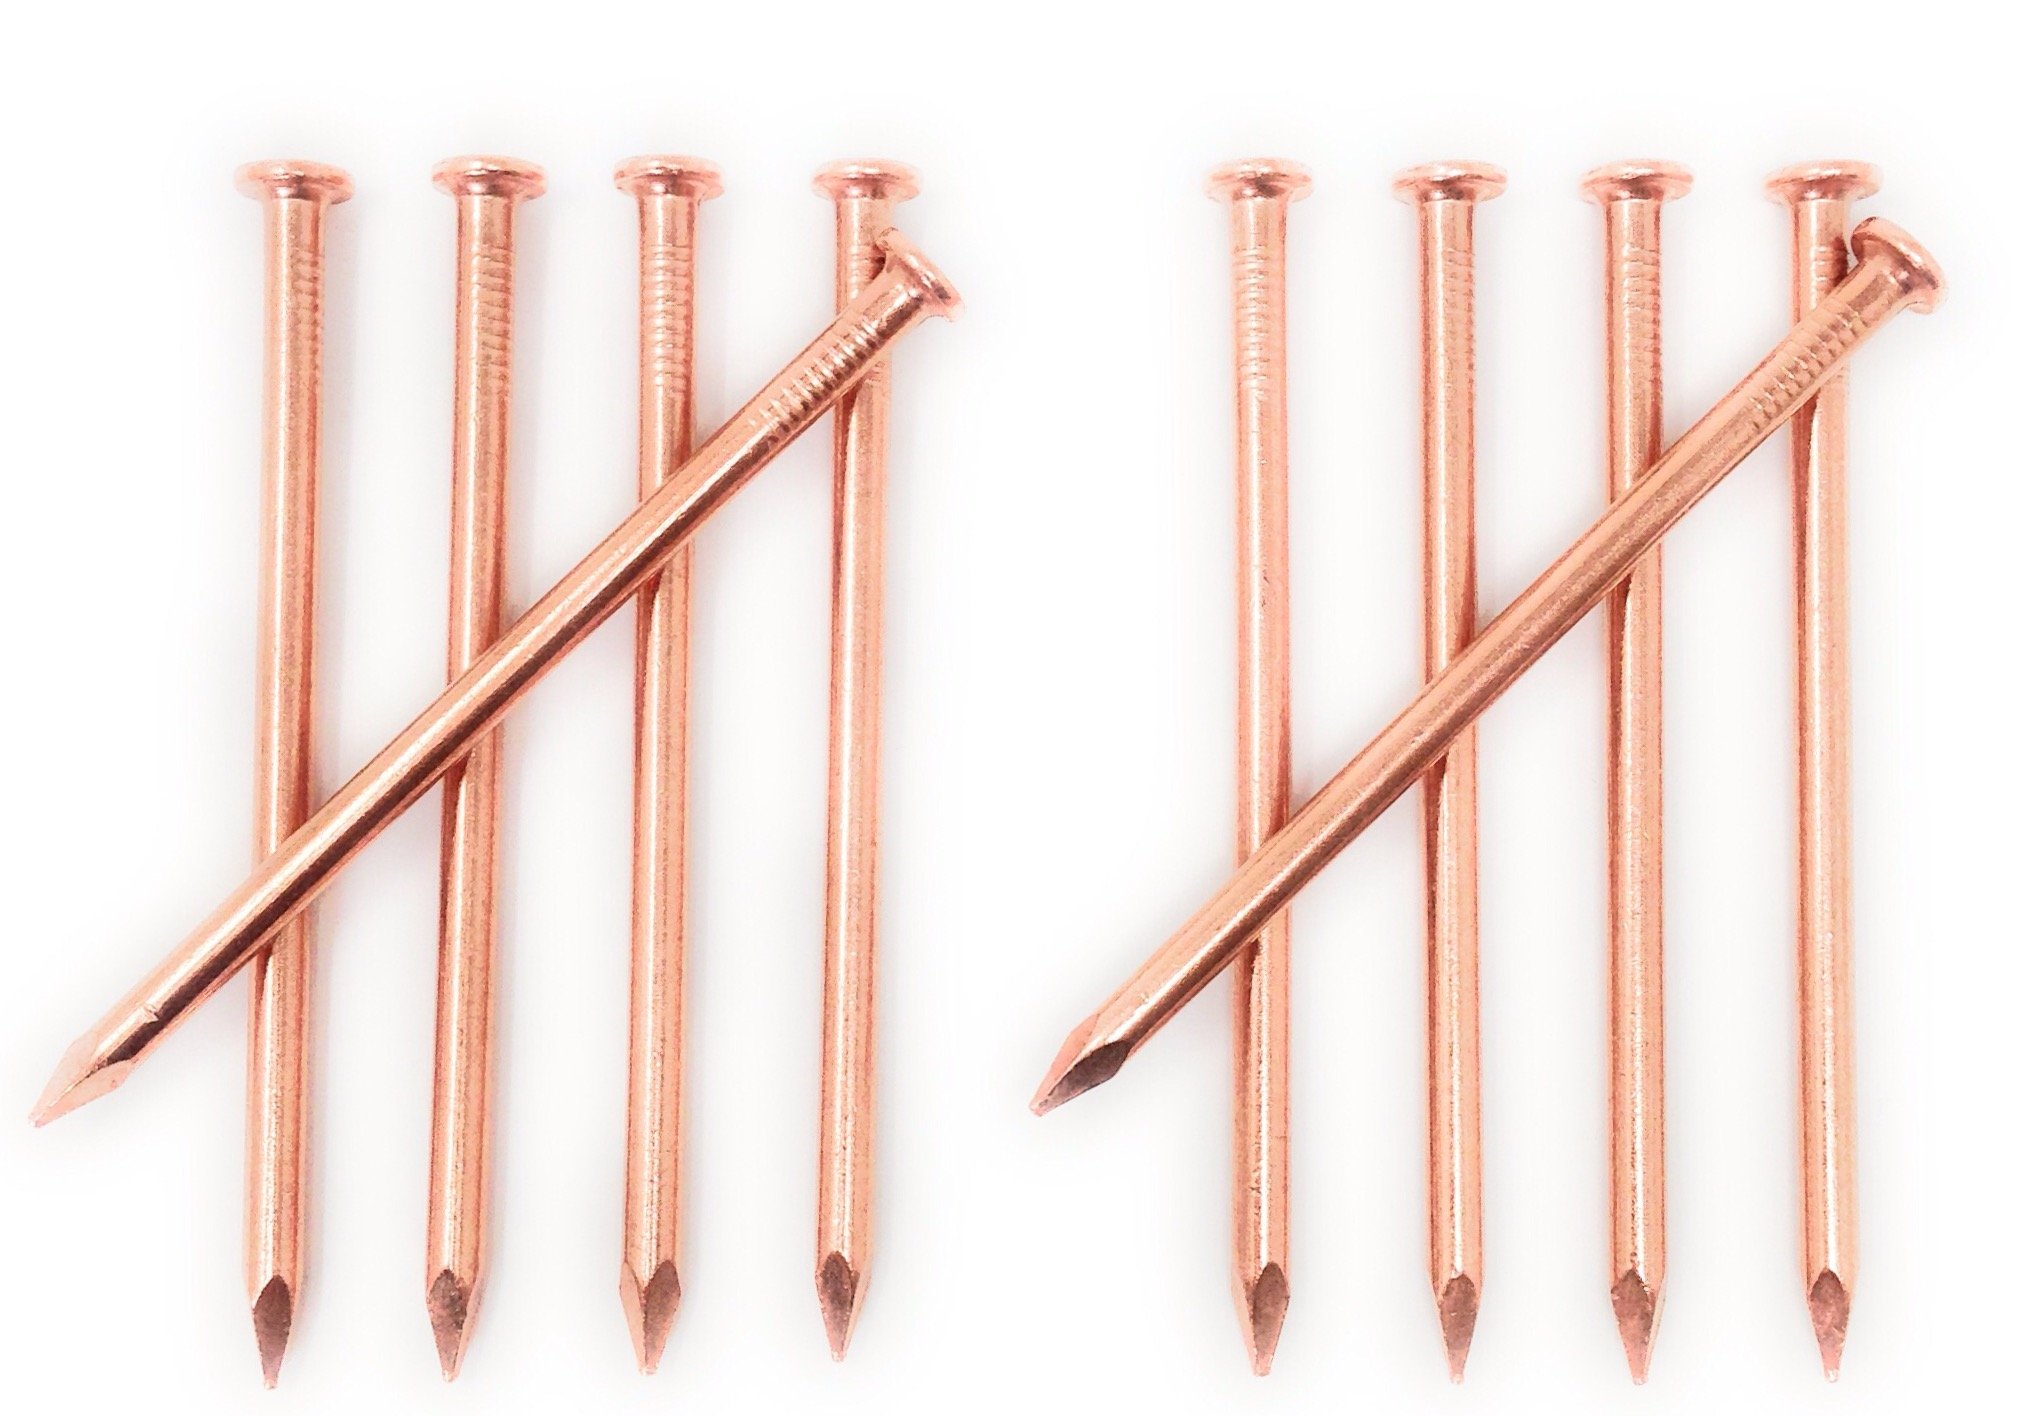 4 inch Copper Nails for Killing Trees, Stumps & Roots - These Killer Spikes Make Tree Removal Easier